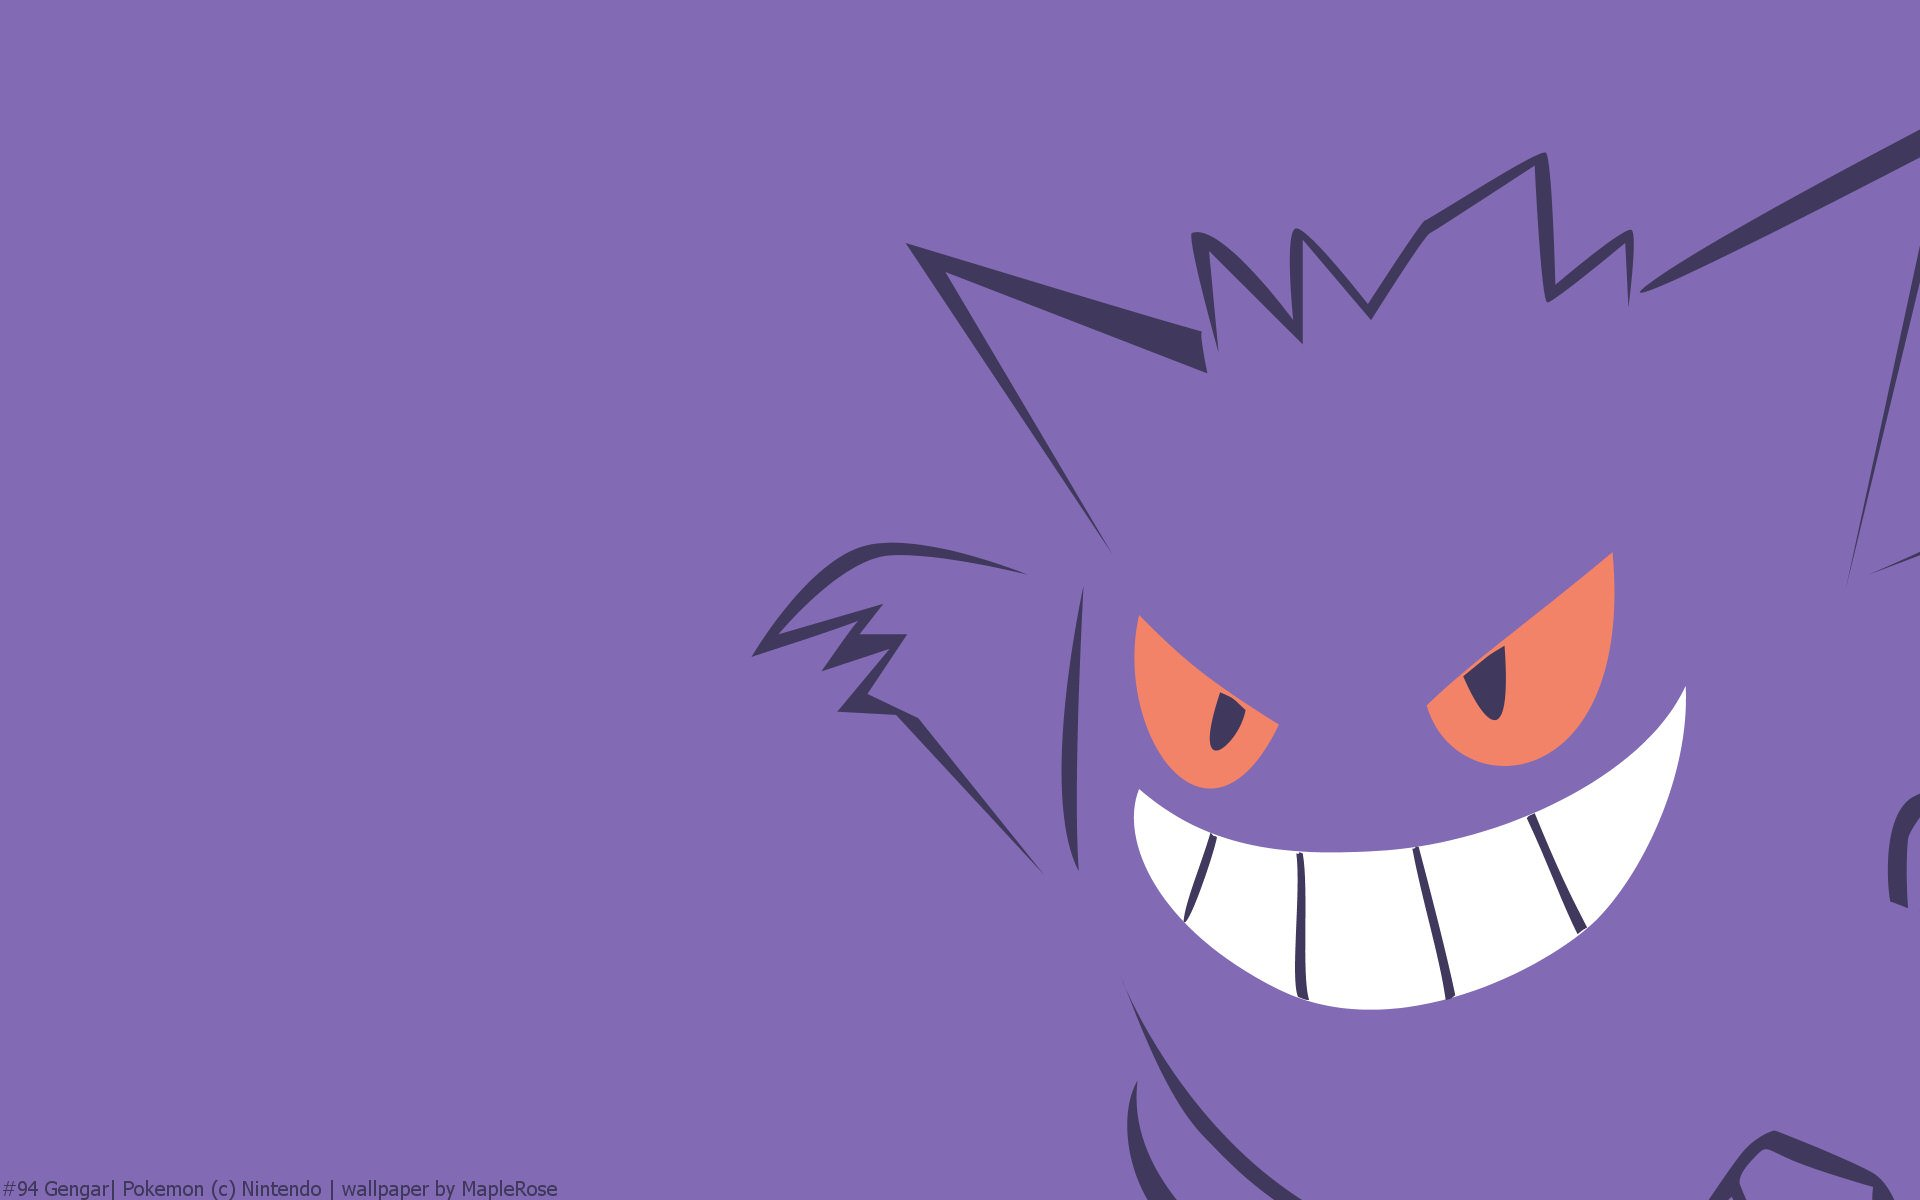 Gengar exclusive moves analysis: Lick vs Shadow Claw